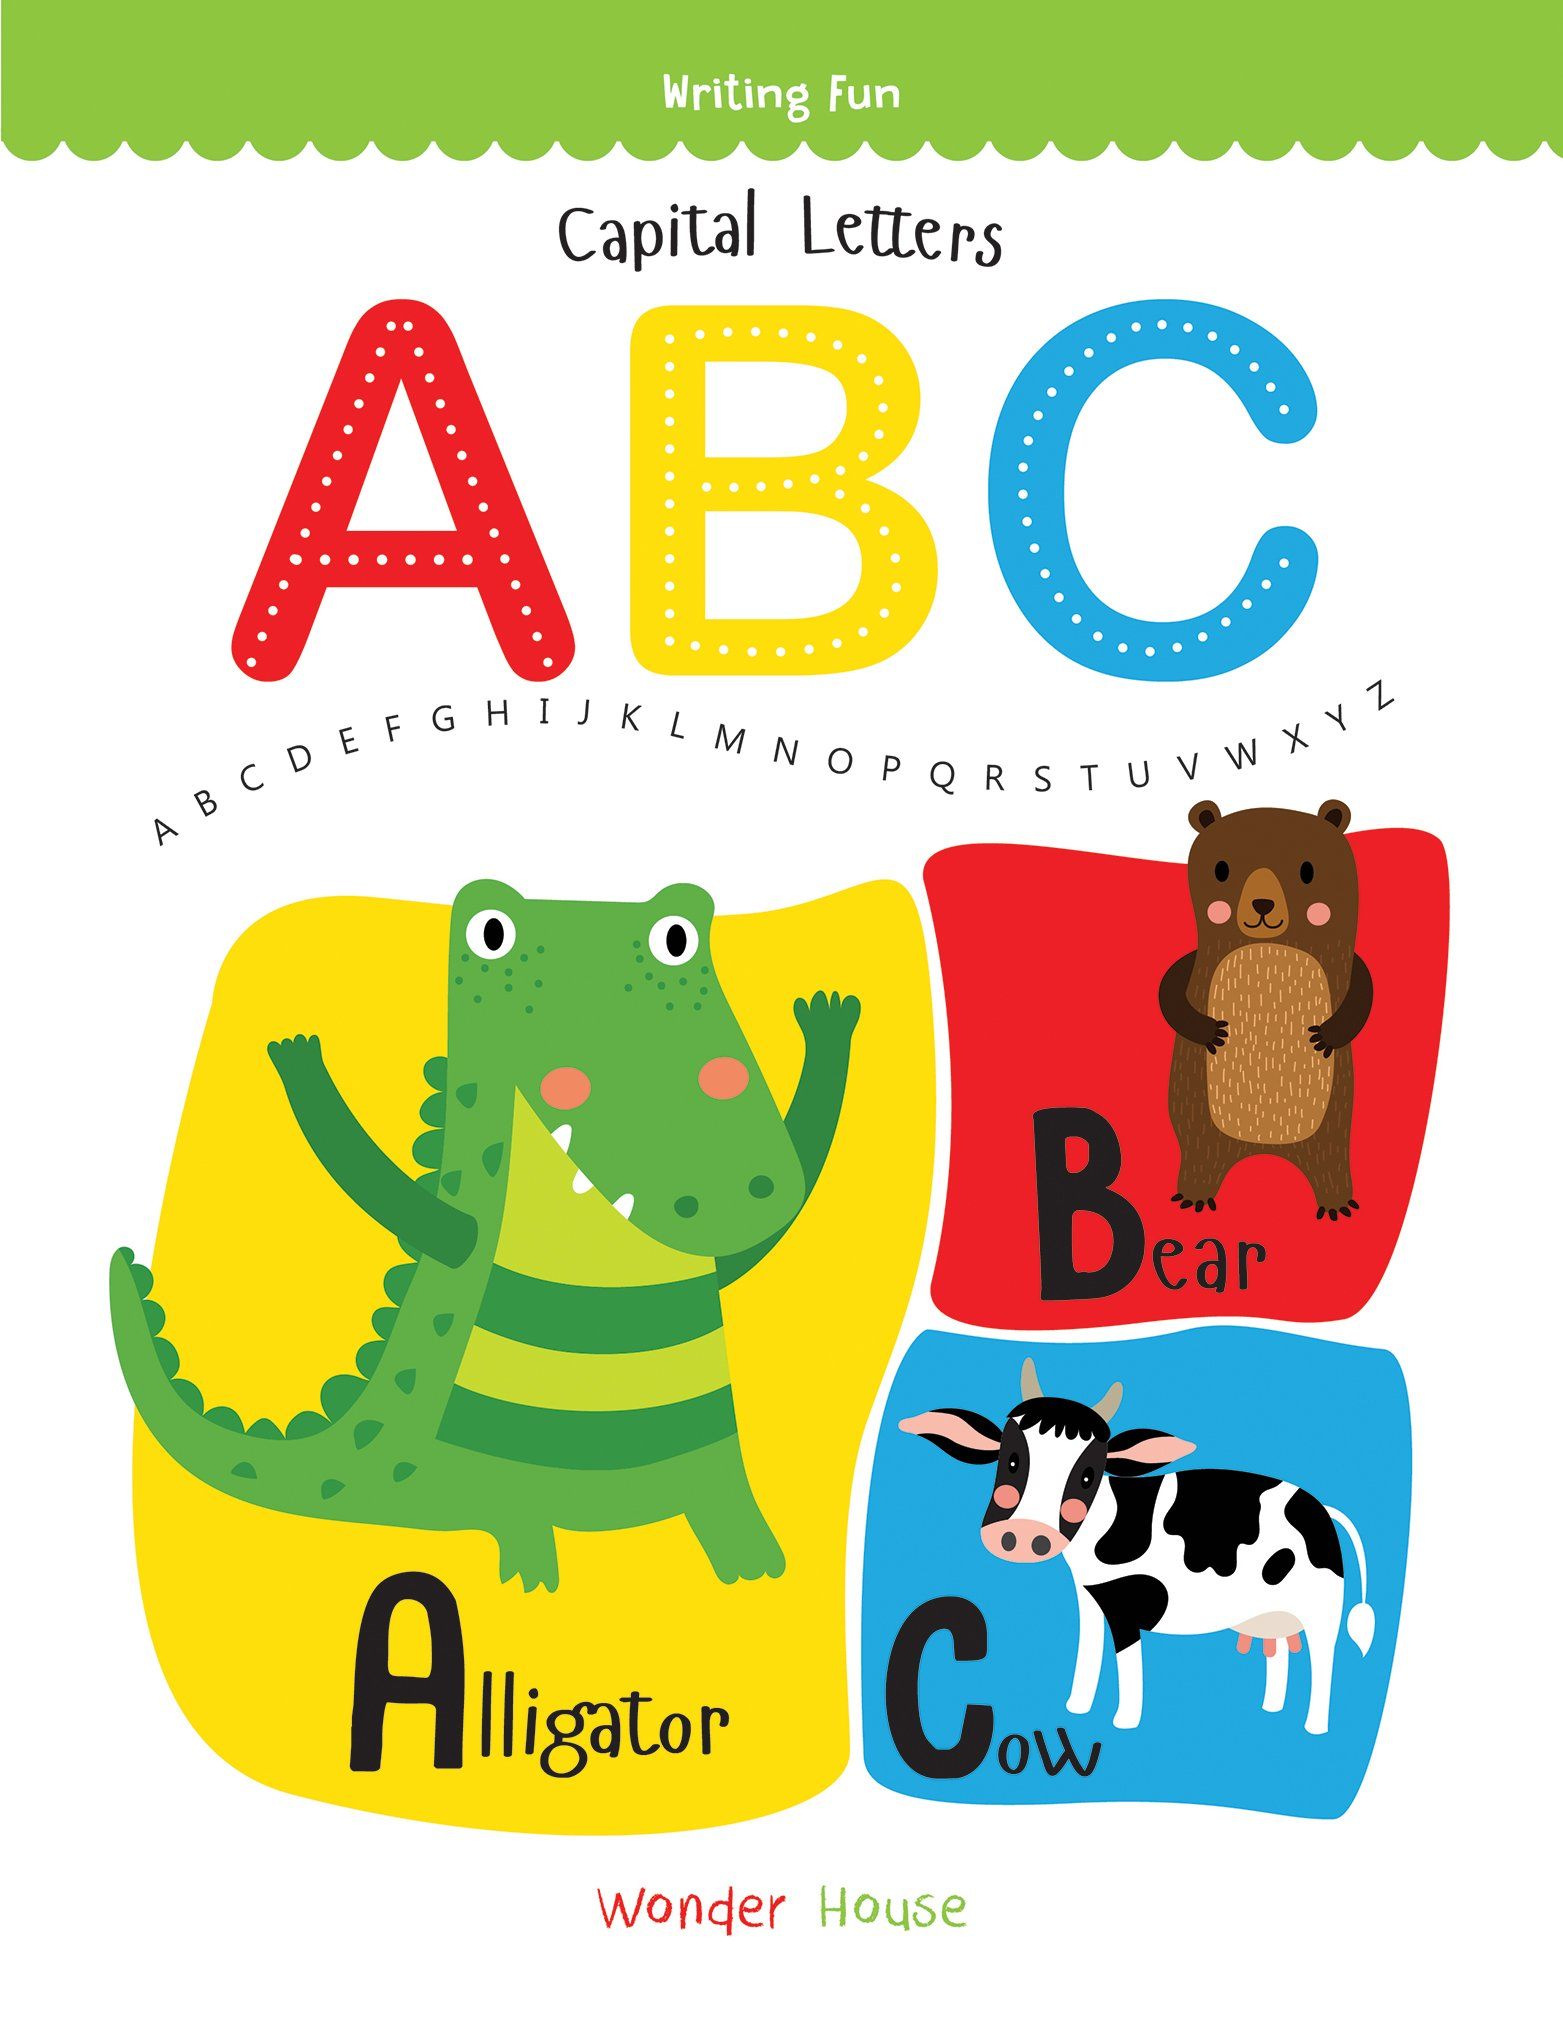 Buy Capital Letters ABC: Write and practice Capital Letters